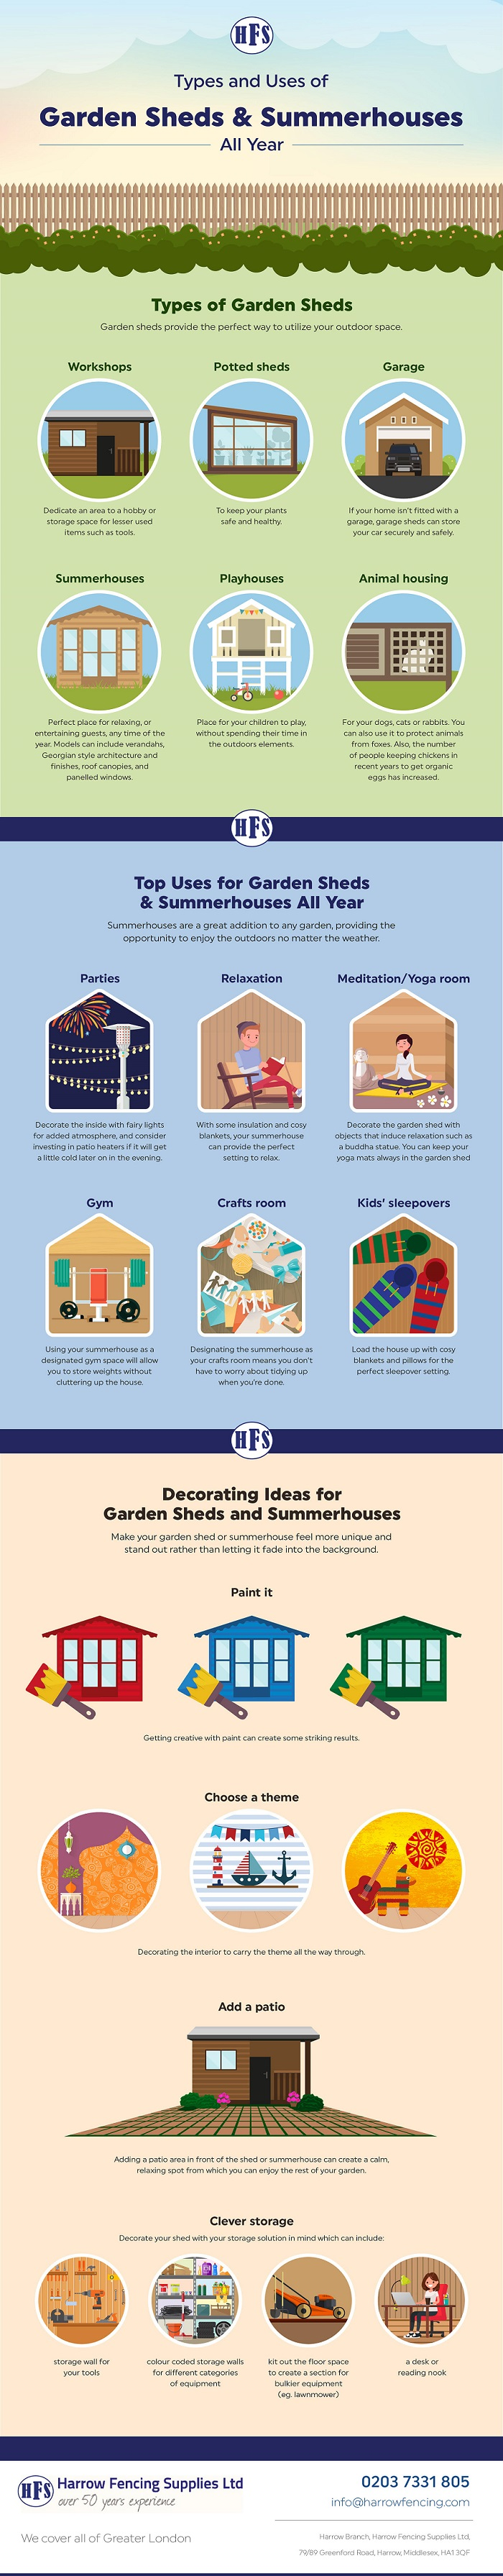 Types and Uses of Garden Sheds & Summerhouses All Year-700px